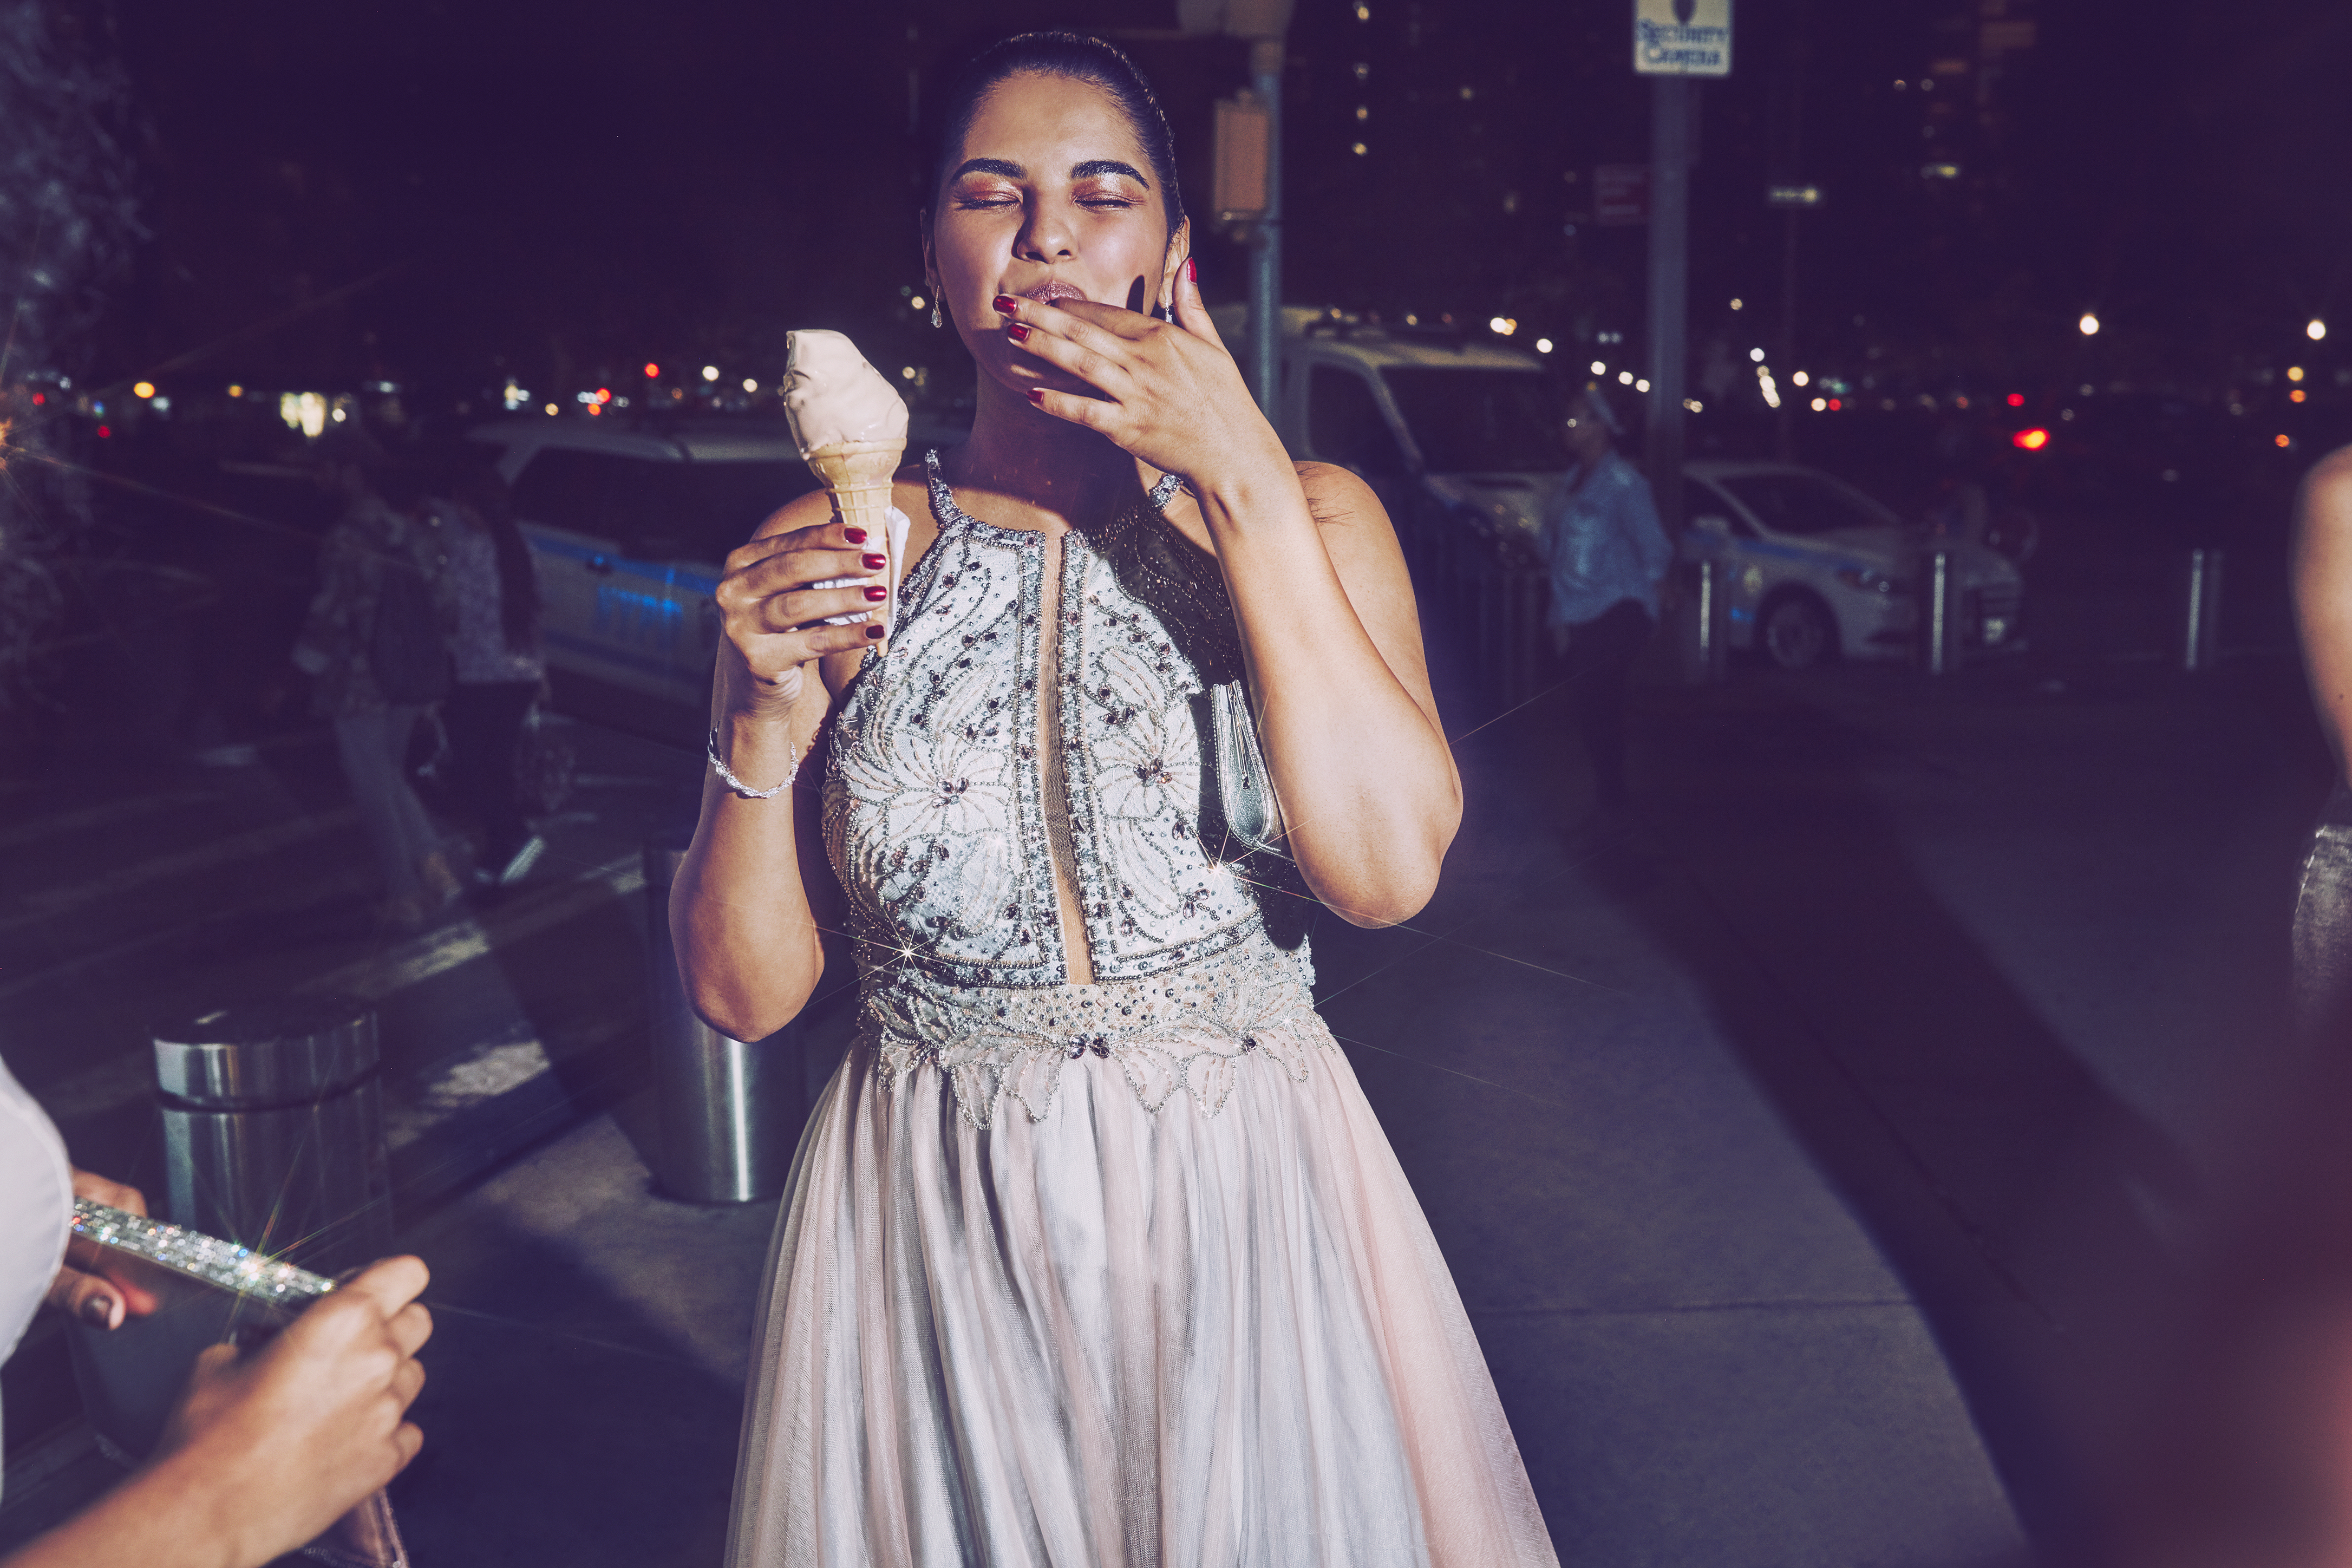 Girl eating ice cream in crystal long prom dress